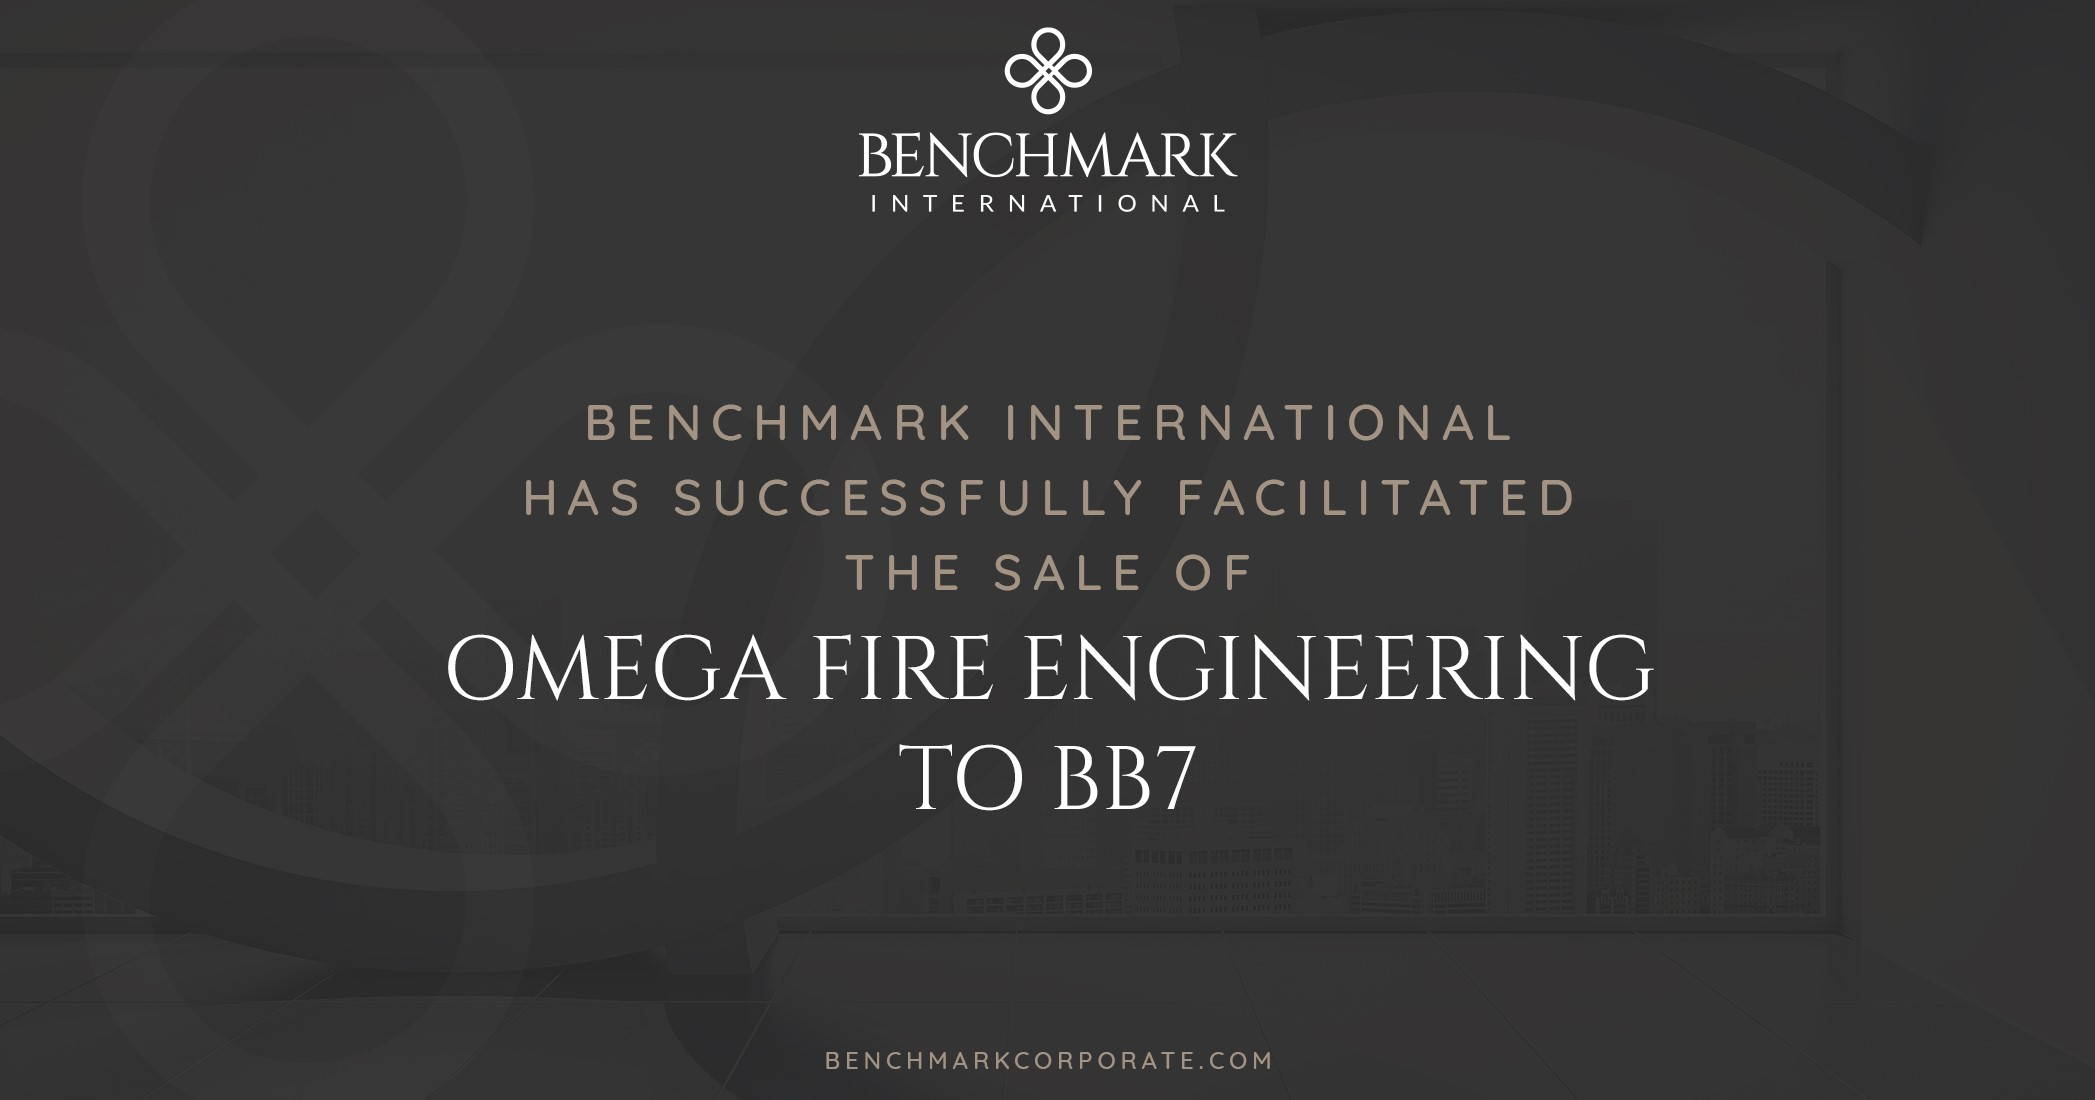 Benchmark International has Successfully Facilitated the Sale of Omega Fire Engineering to BB7